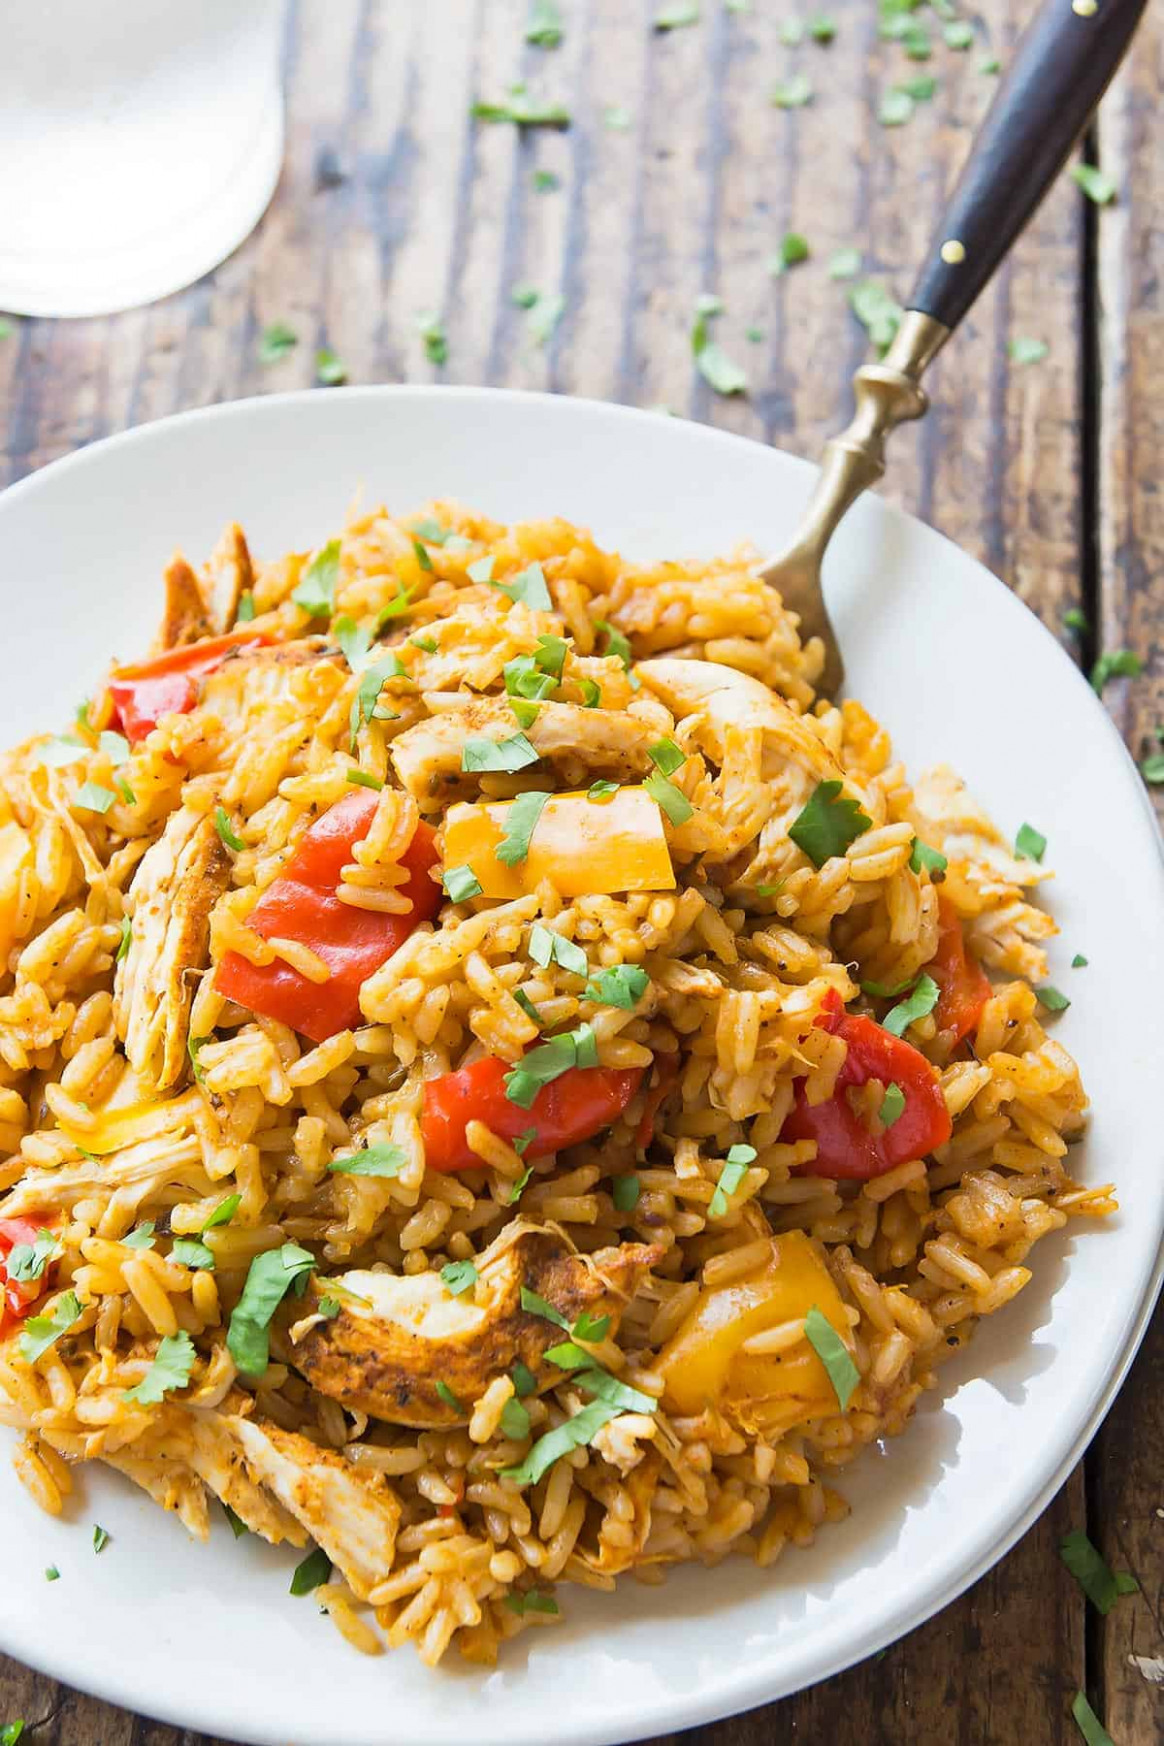 Instant Pot Chicken and Rice - Leelalicious - instant pot recipes chicken and rice